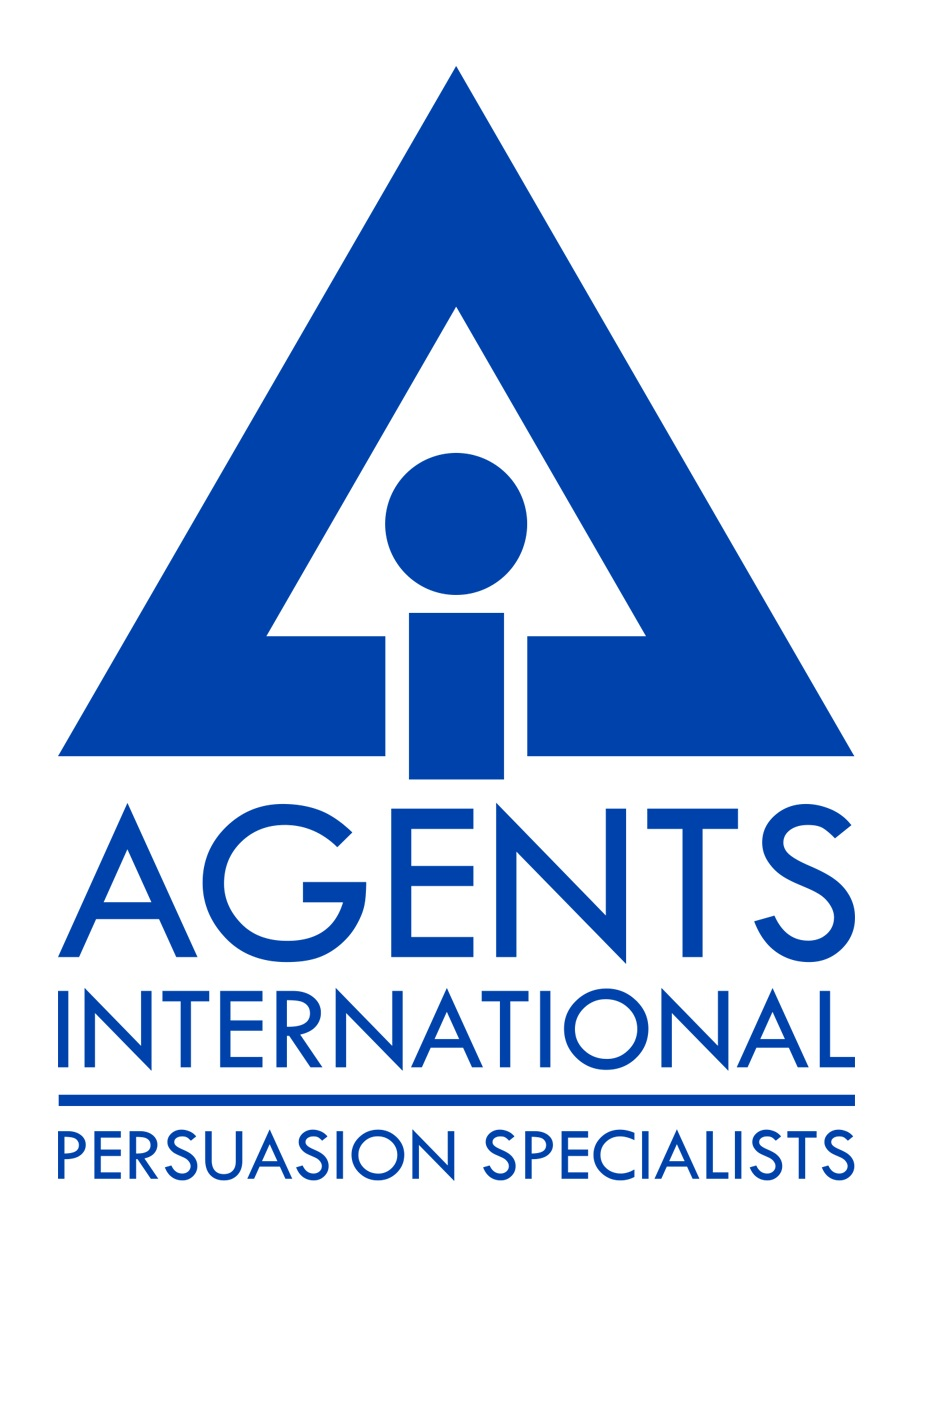 NEW+LOGO_AGENTS.jpg